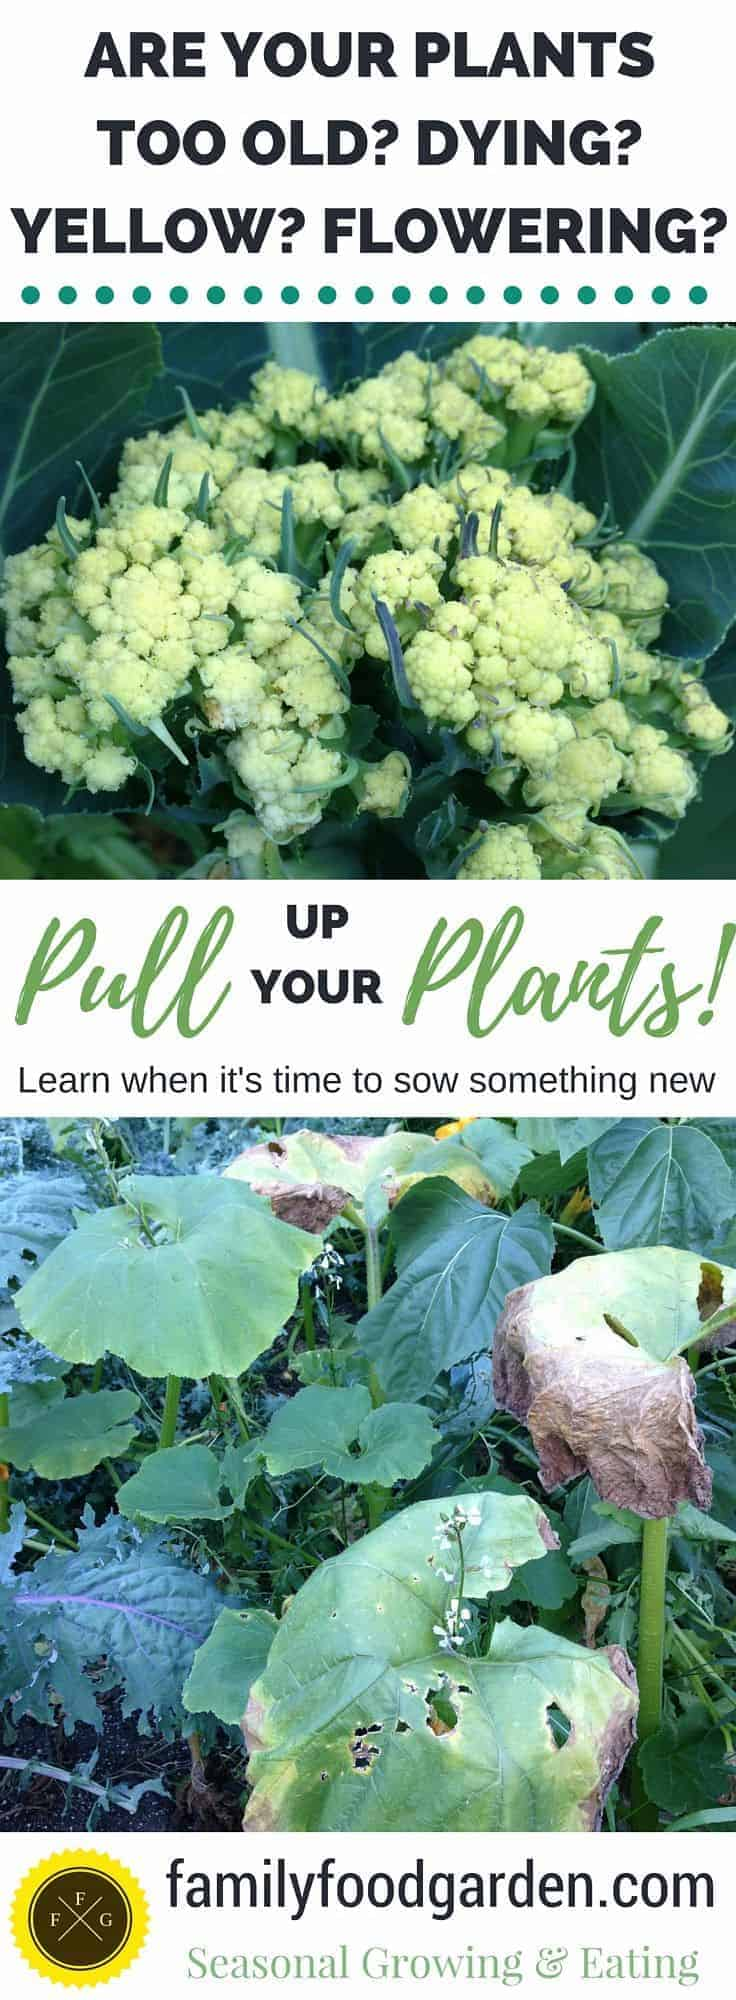 Learn when you can save a plant or when it's time to pull it up and sow new crops